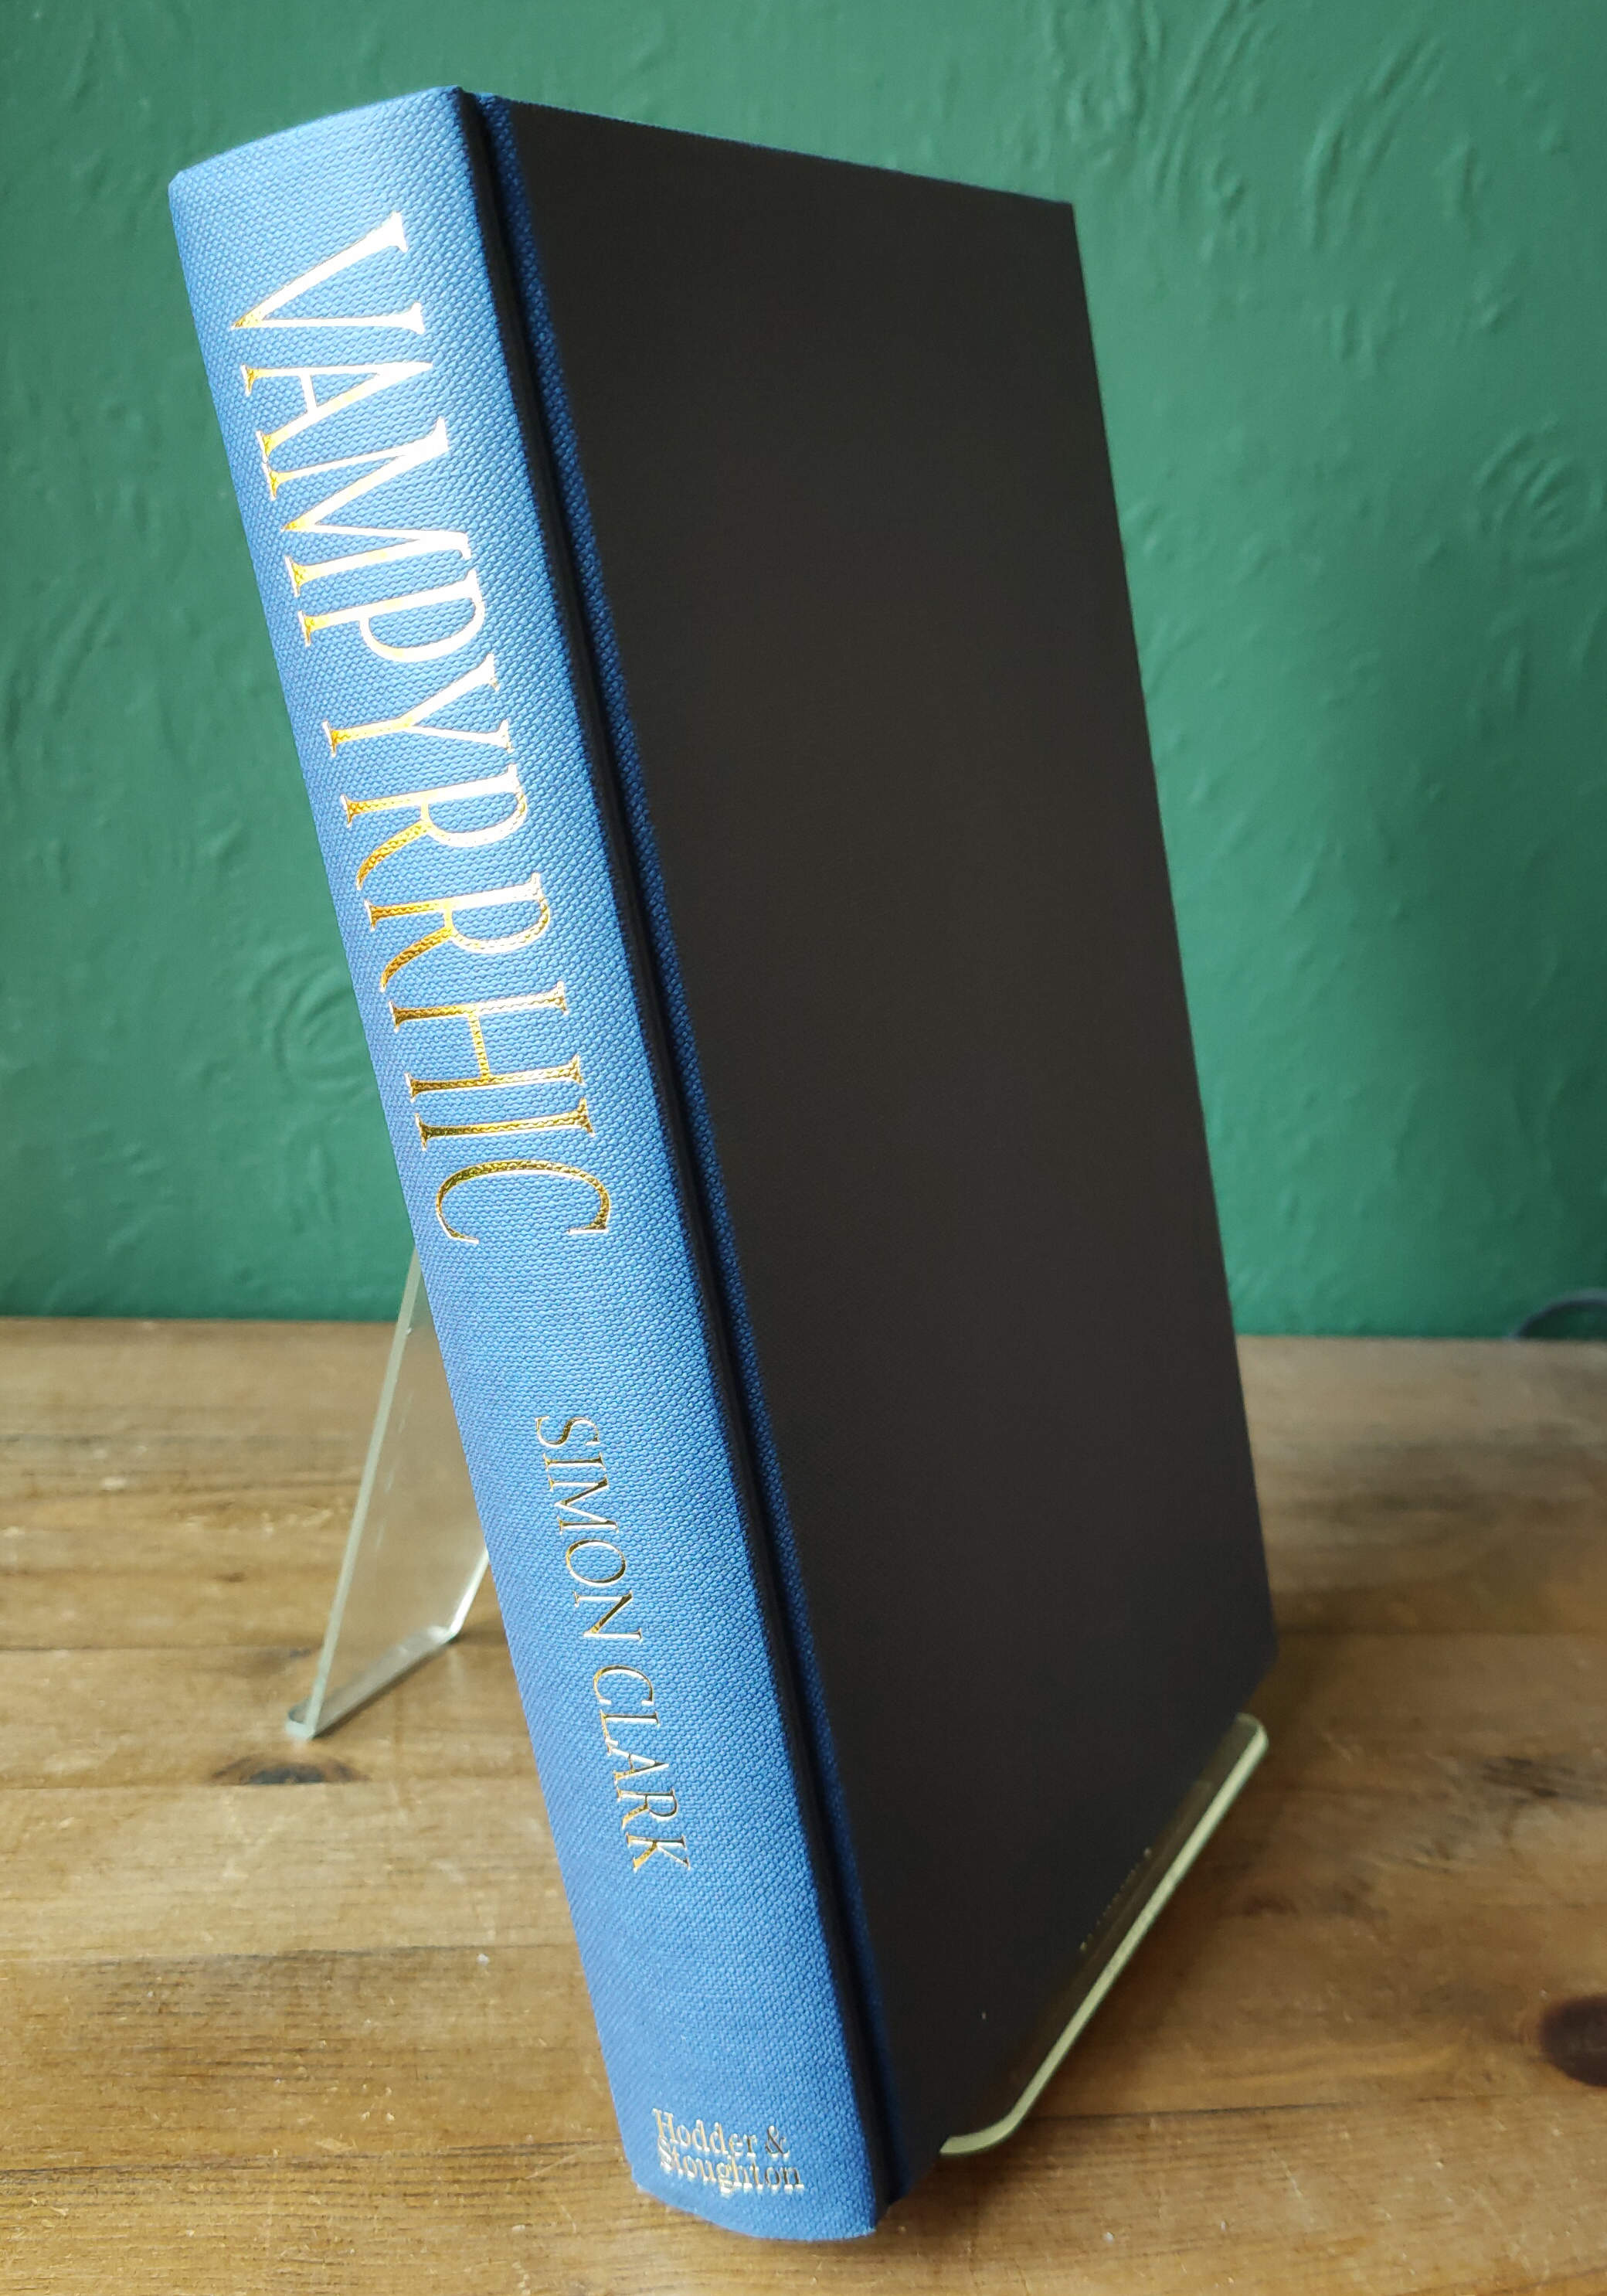 Vampyrrhic Signed UK First Edition